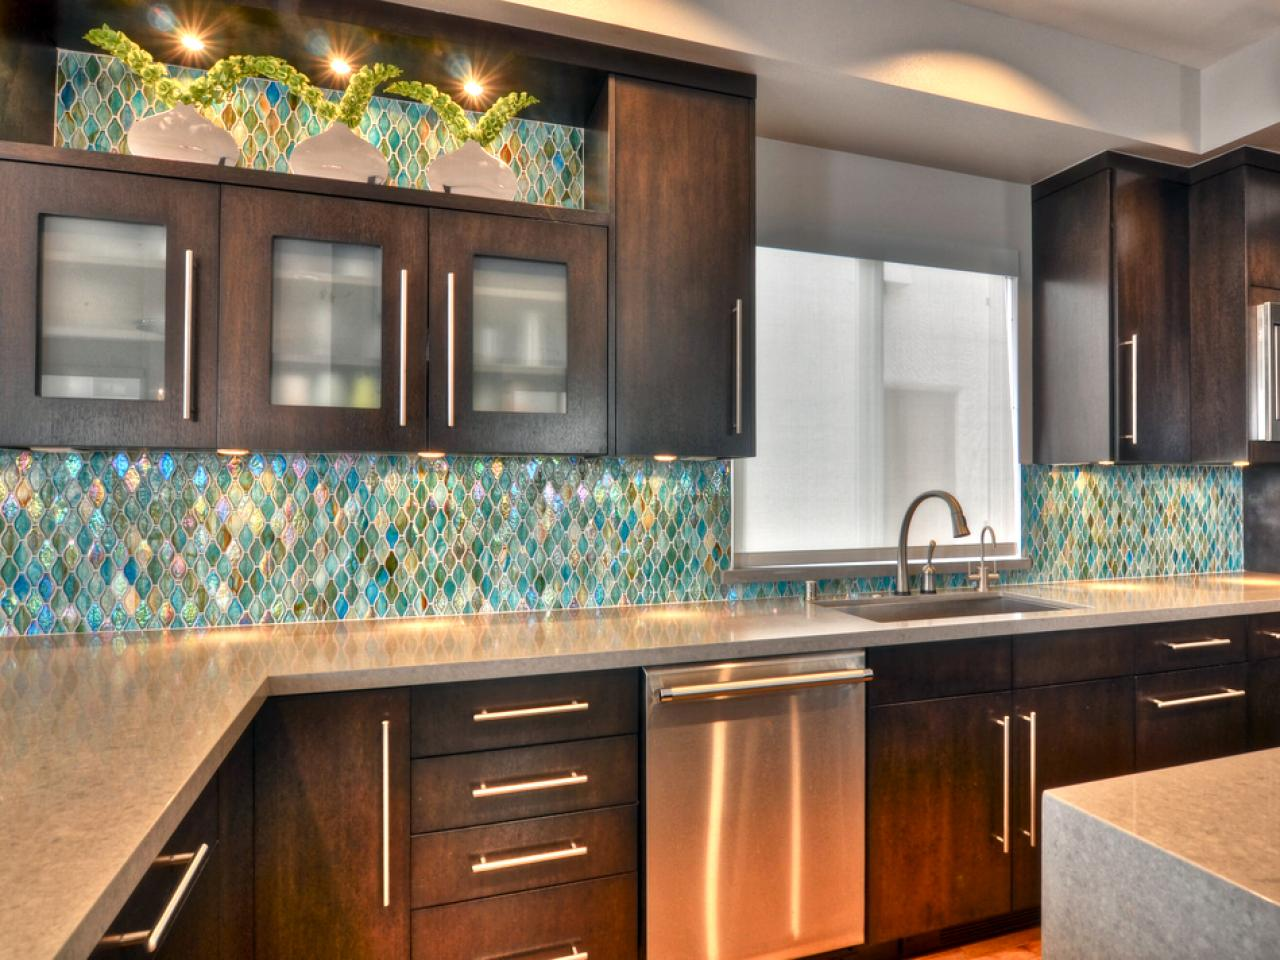 Beautiful Blue Color Schemes Kitchen Backsplash Designs and Dark Wood Kitchen Cabinets